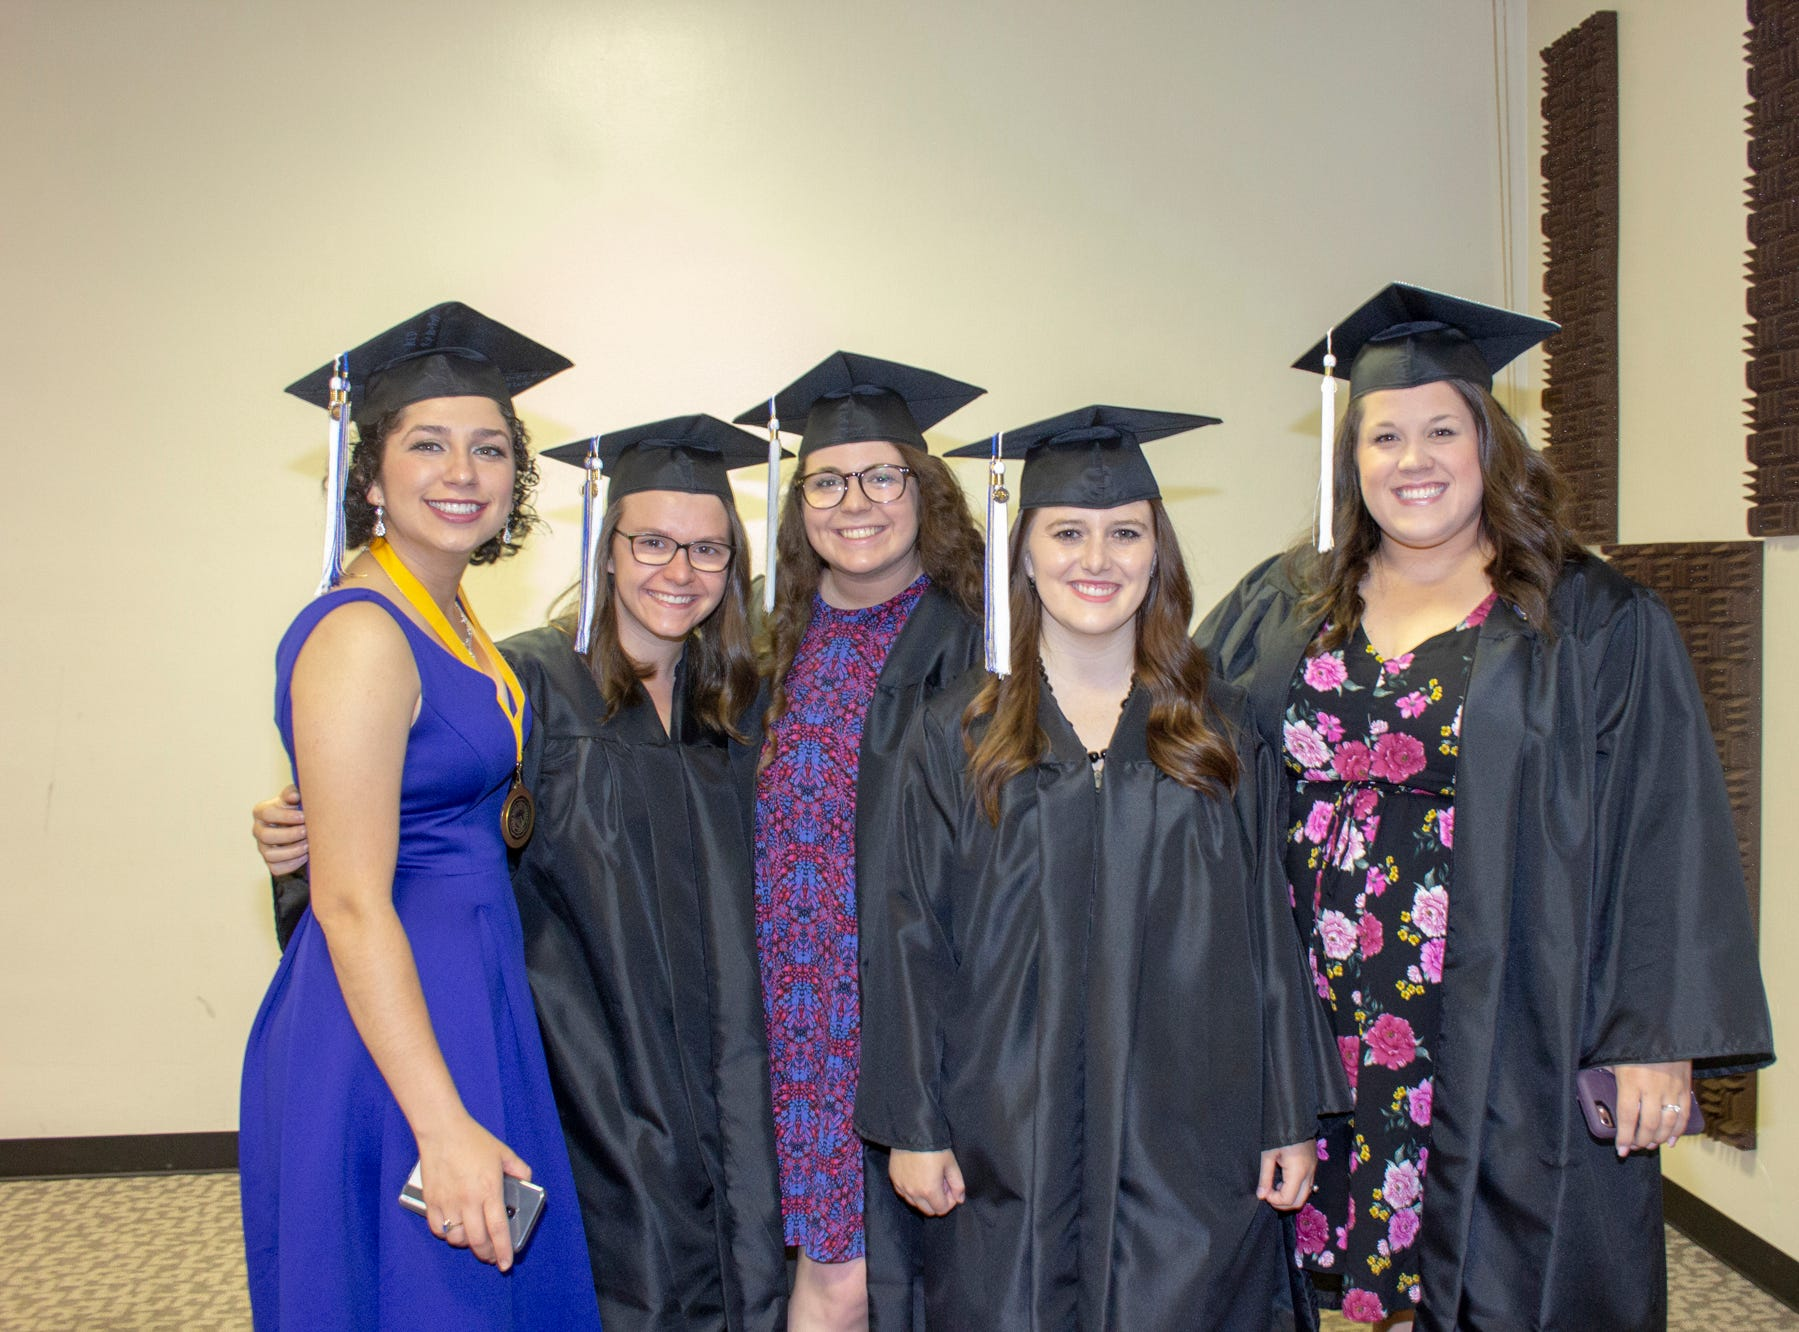 Mars Hill University held spring graduation May 11, 2019, with 161 students received bachelor's degrees, three graduates receiving Master of Education degrees and three receiving Master of Management degrees.